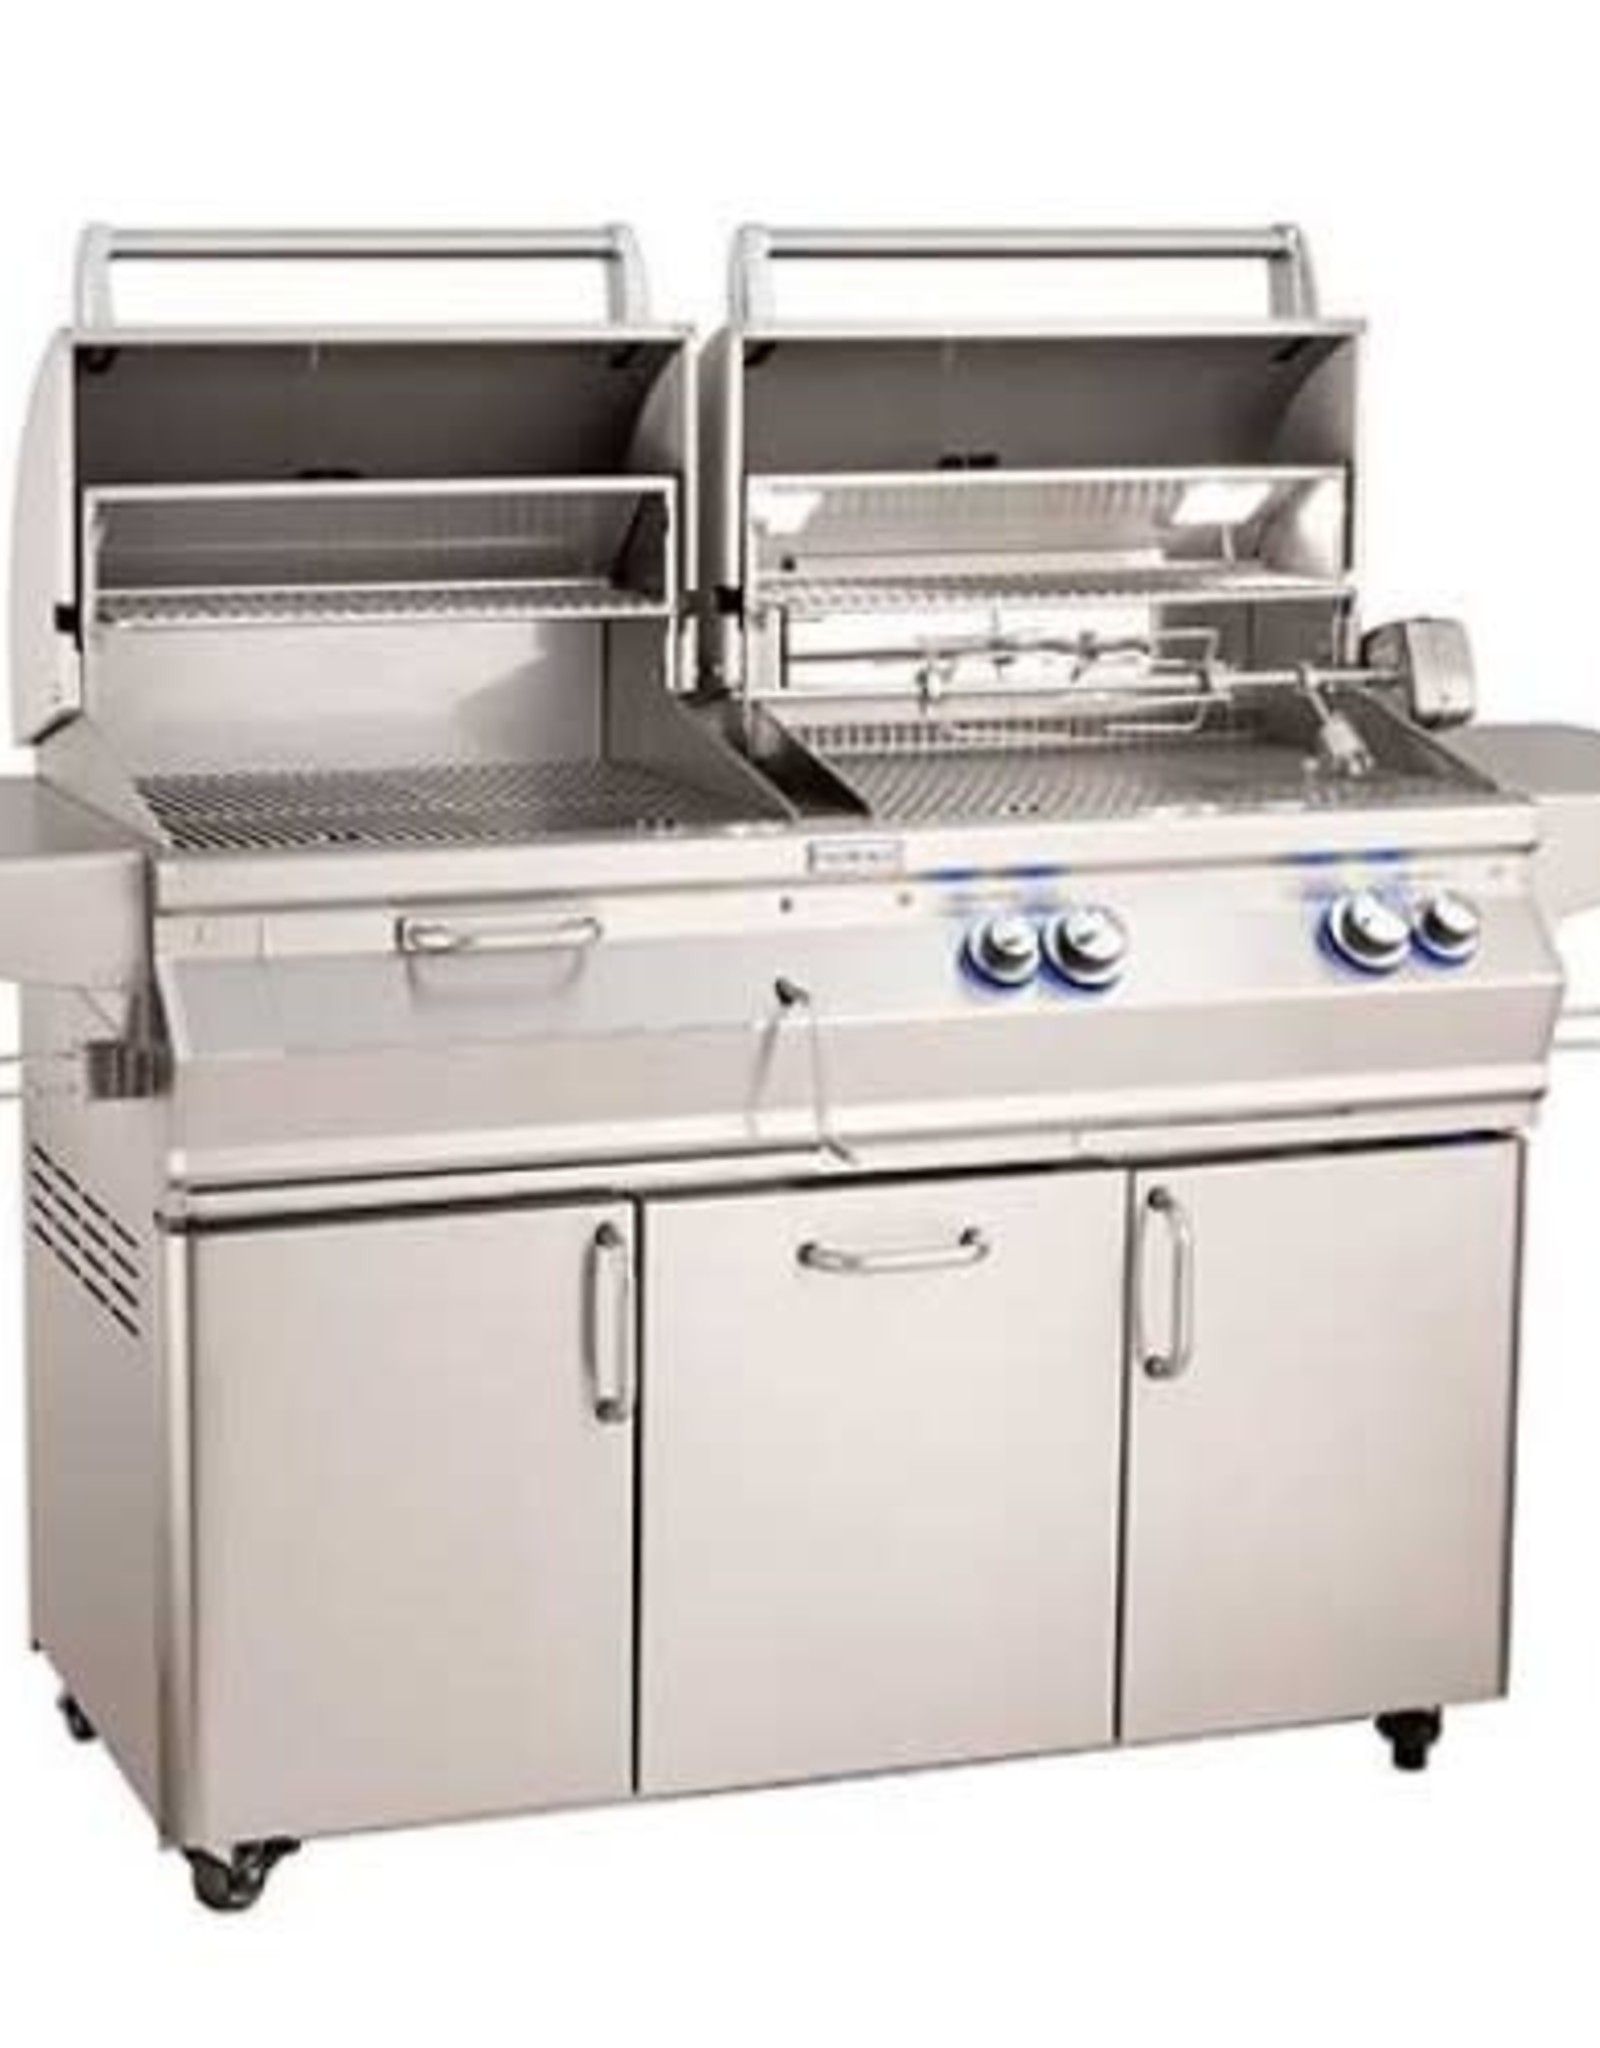 Fire Magic Fire Magic - Aurora A830s 46-inch Portable Gas and Charcoal Combo Grill With Rotisserie